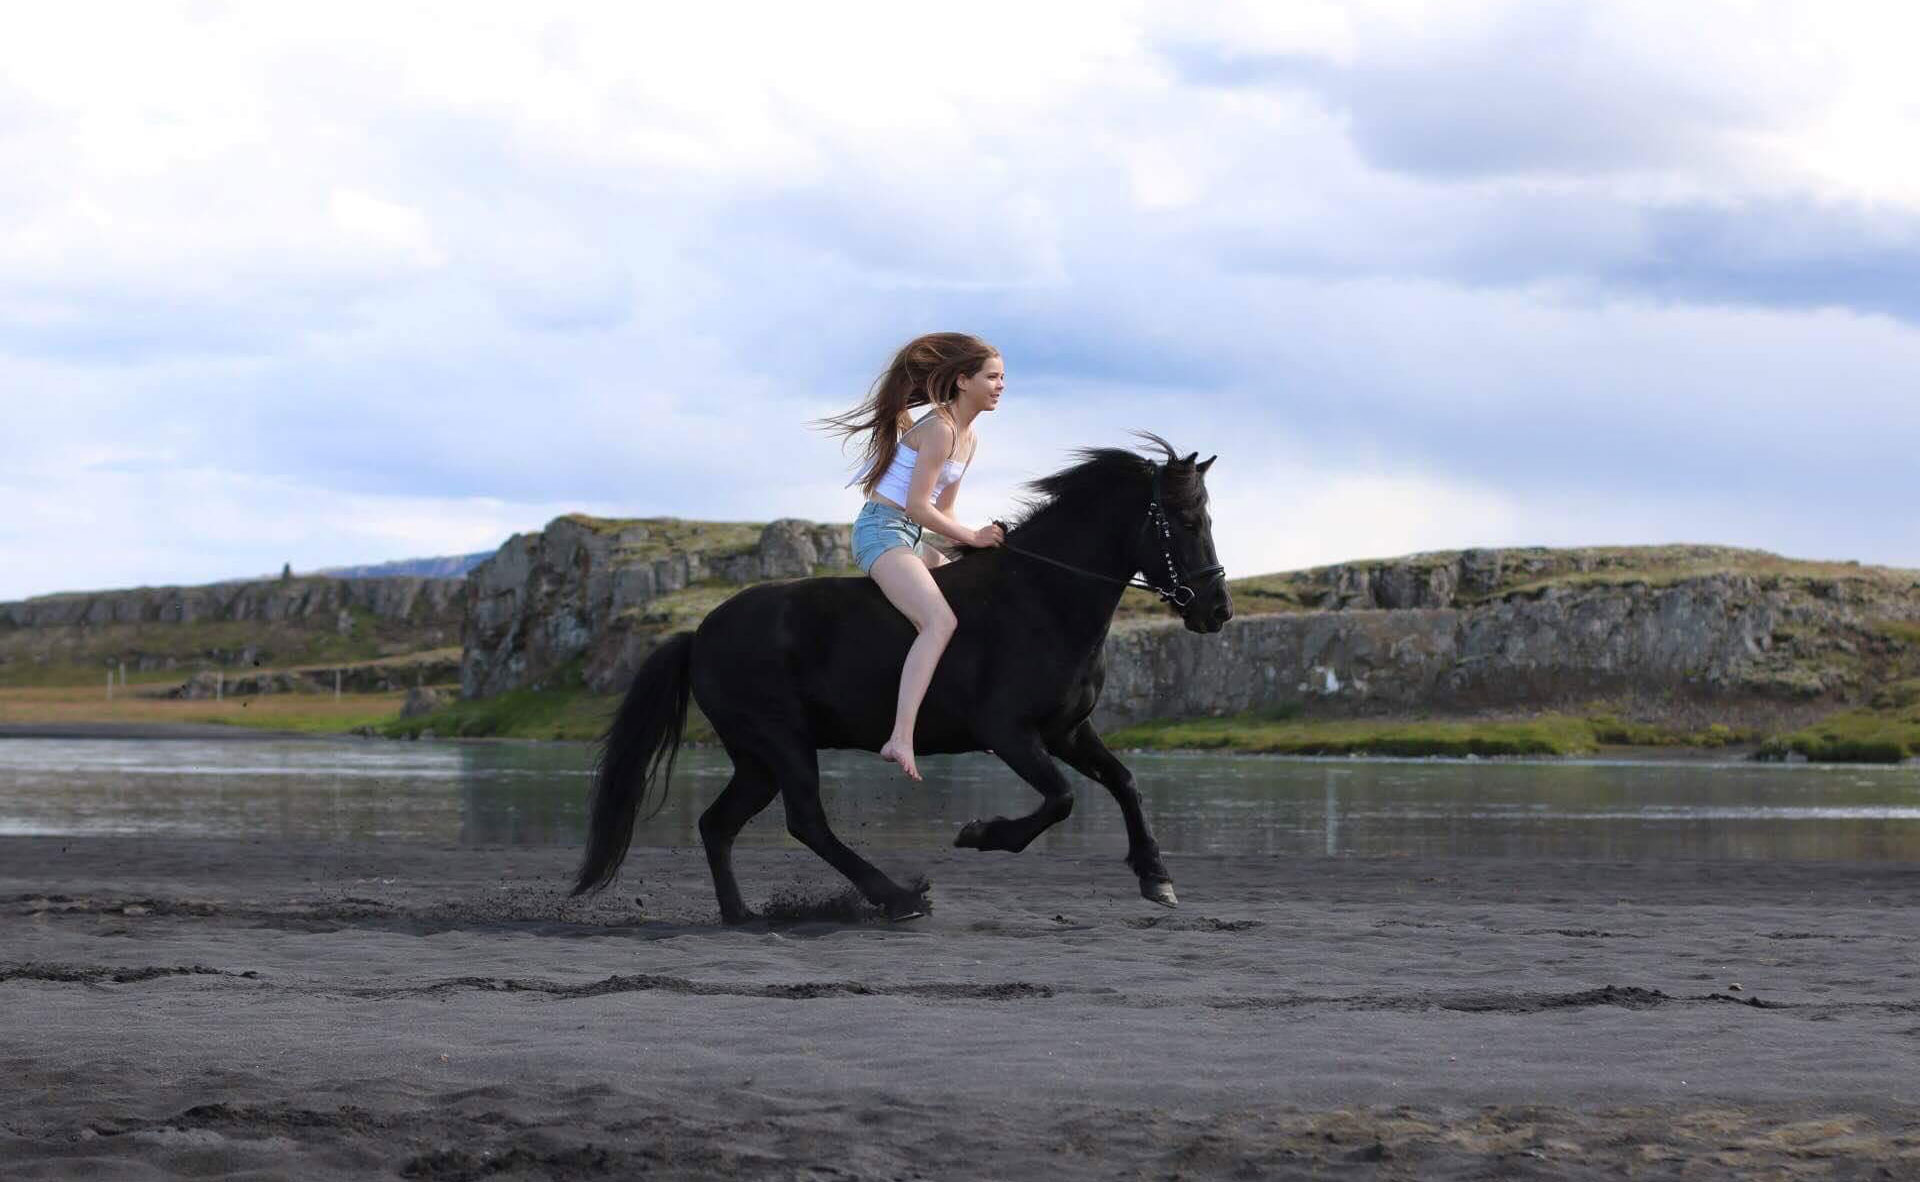 Buy Horse Icelandic riding pictures pictures trends